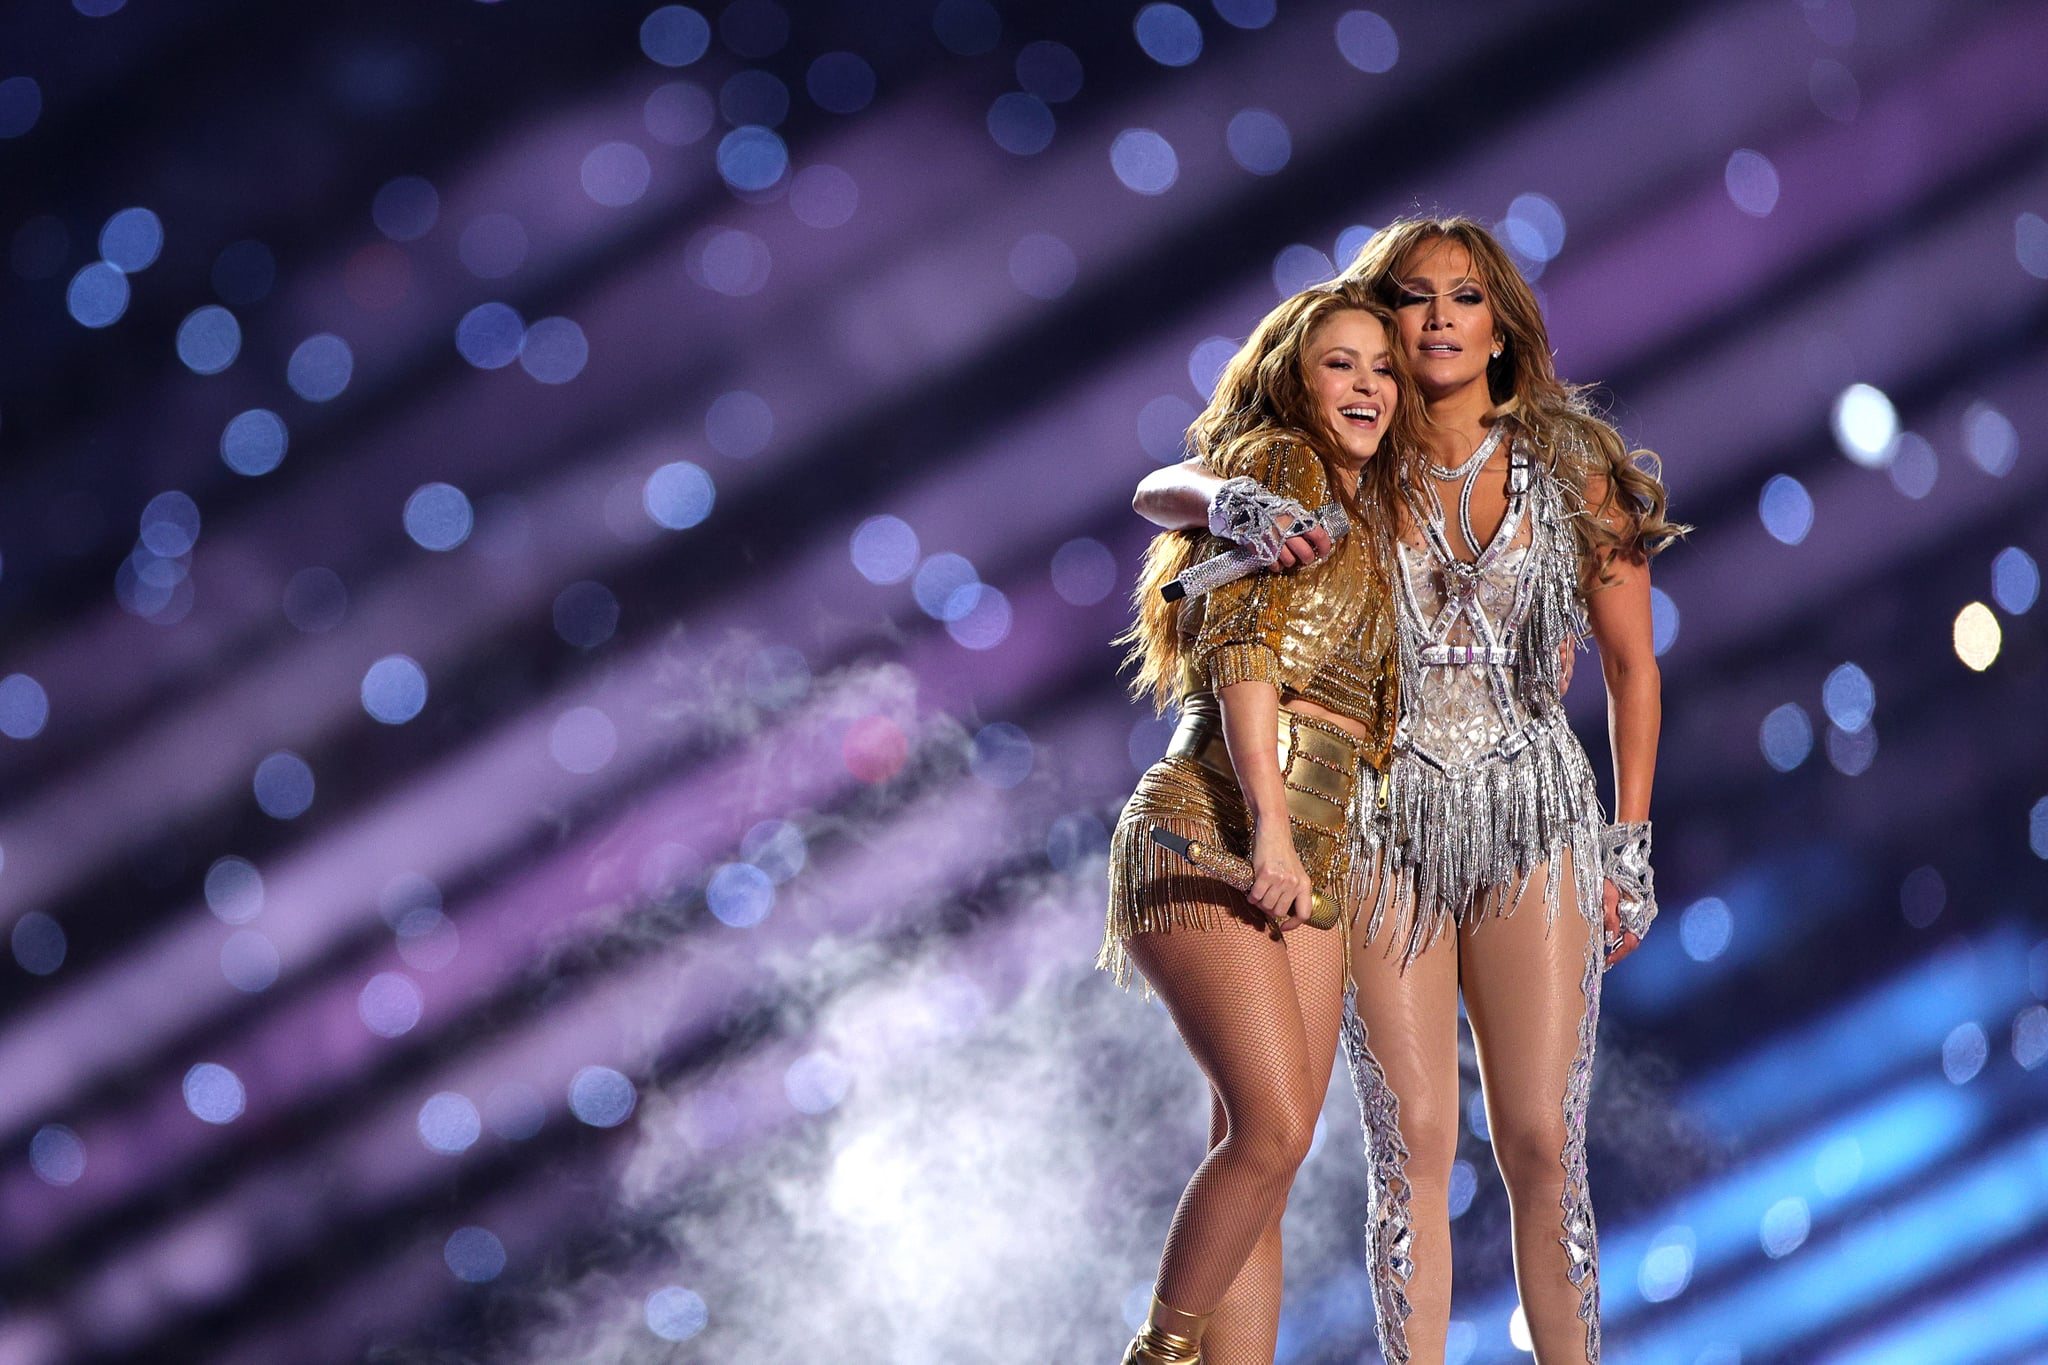 MIAMI, FLORIDA - FEBRUARY 02: Singers Shakira and Jennifer Lopez perform during the Pepsi Super Bowl LIV Halftime Show at Hard Rock Stadium on February 02, 2020 in Miami, Florida. (Photo by Maddie Meyer/Getty Images)